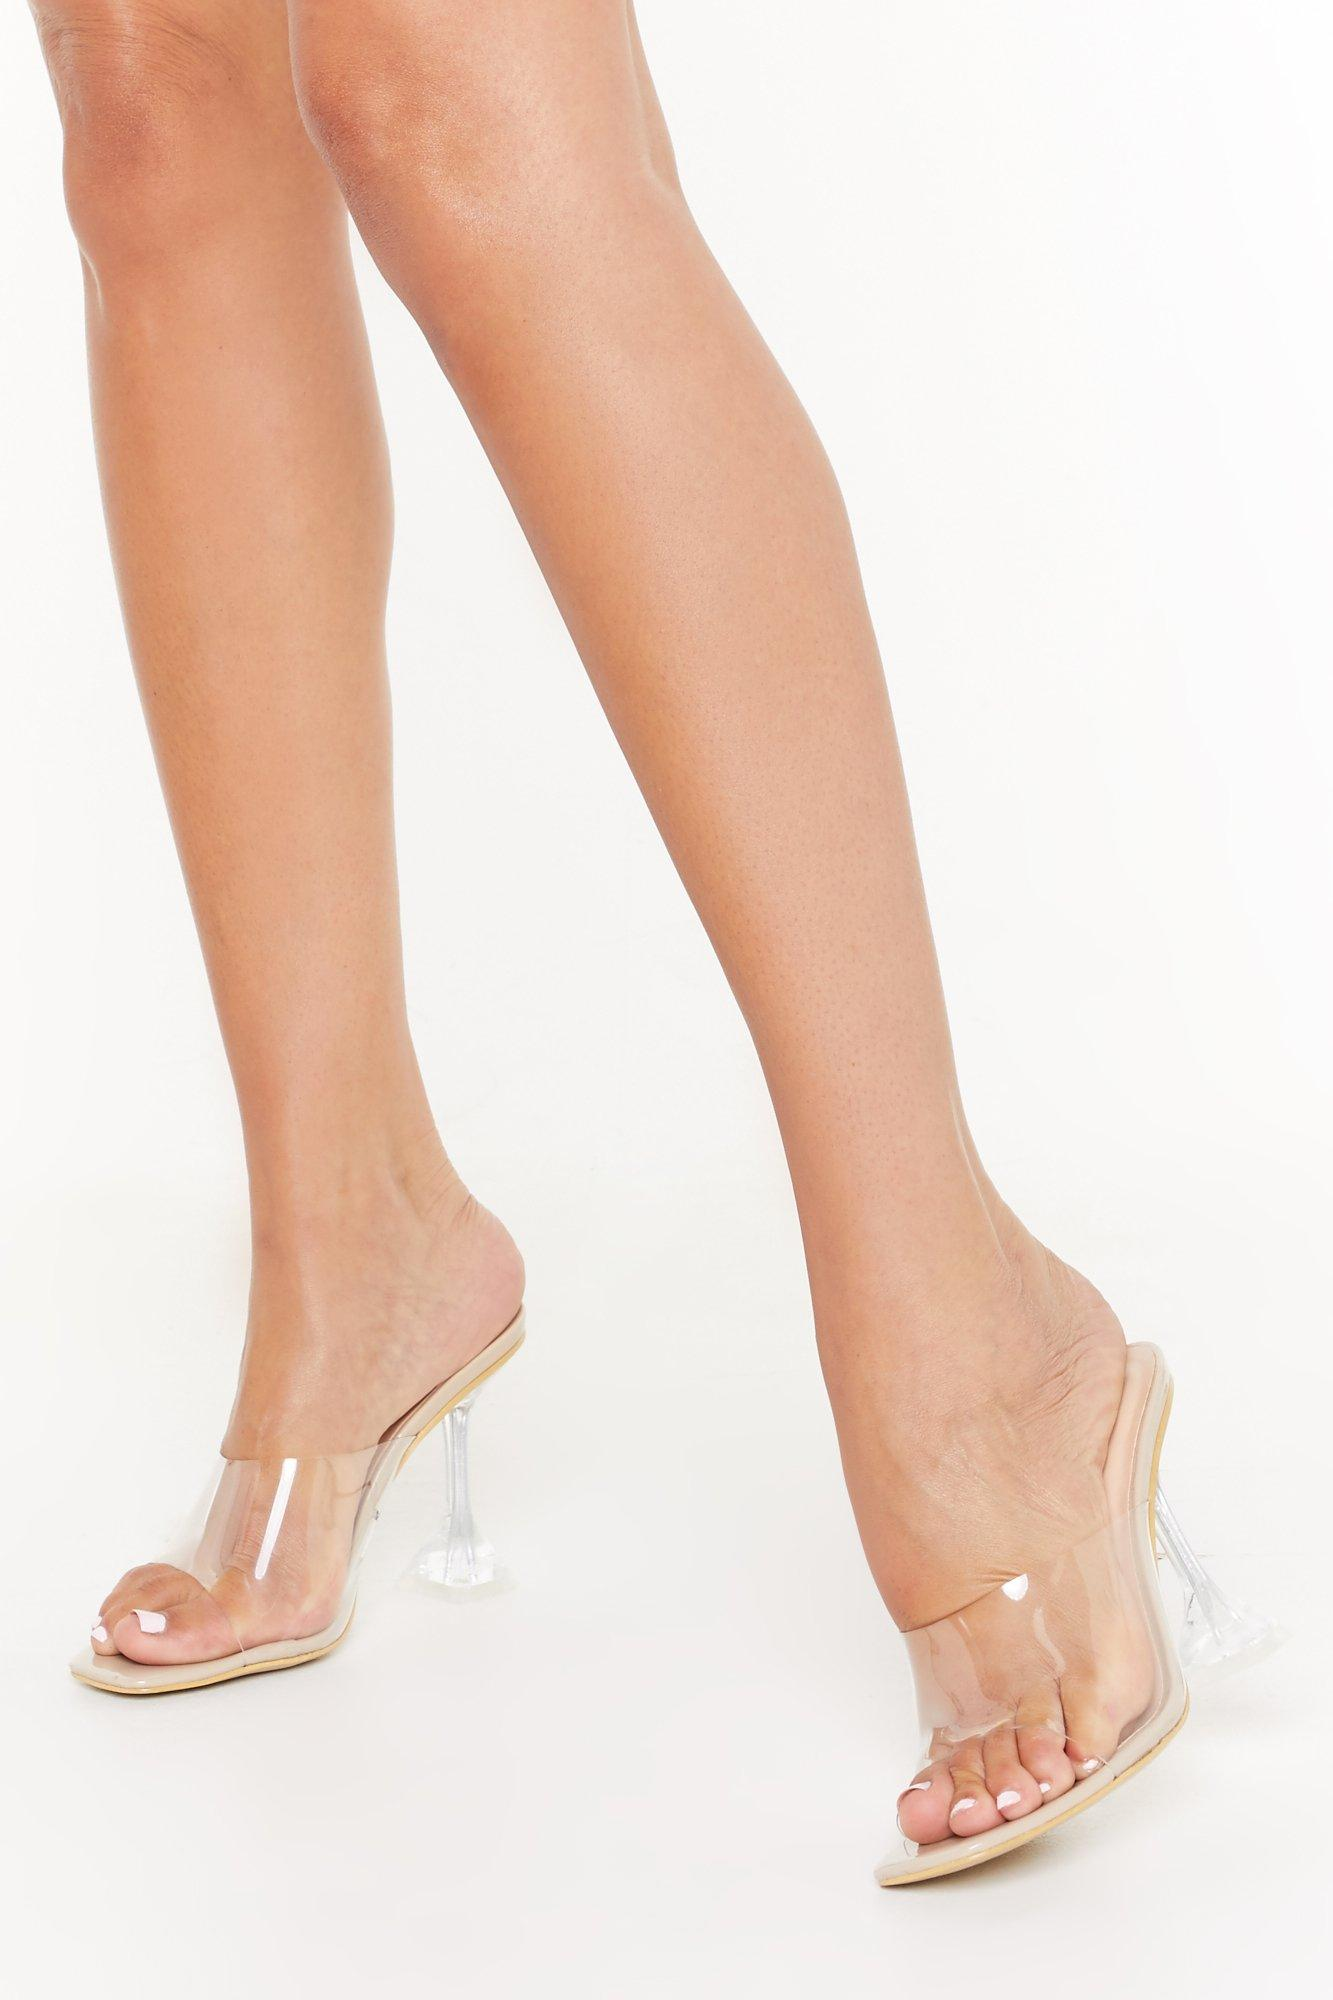 Image of Crystal Clear Stiletto Mules